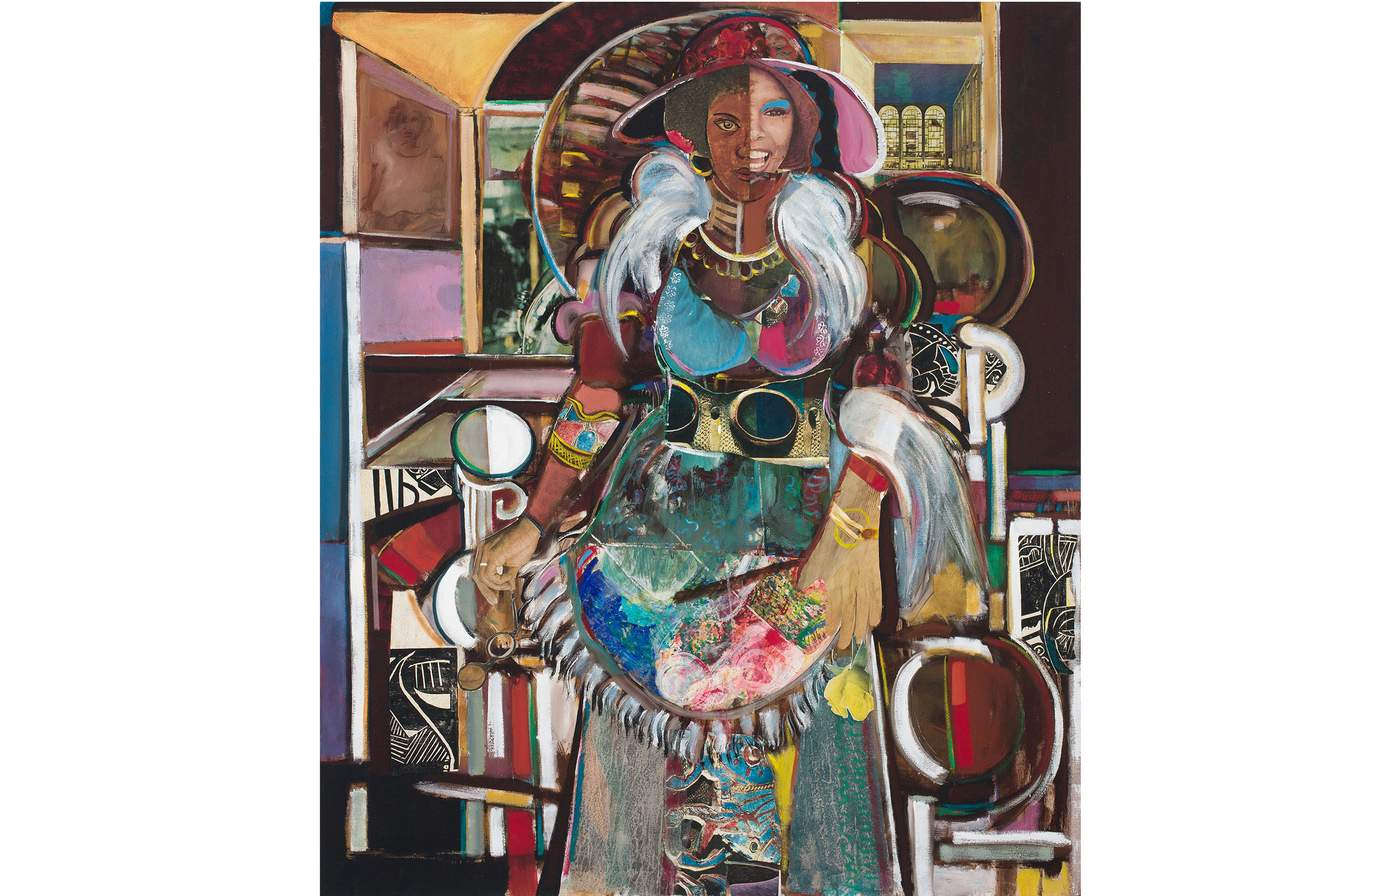 Jazz Singer Lady of Leisure by David Driskell